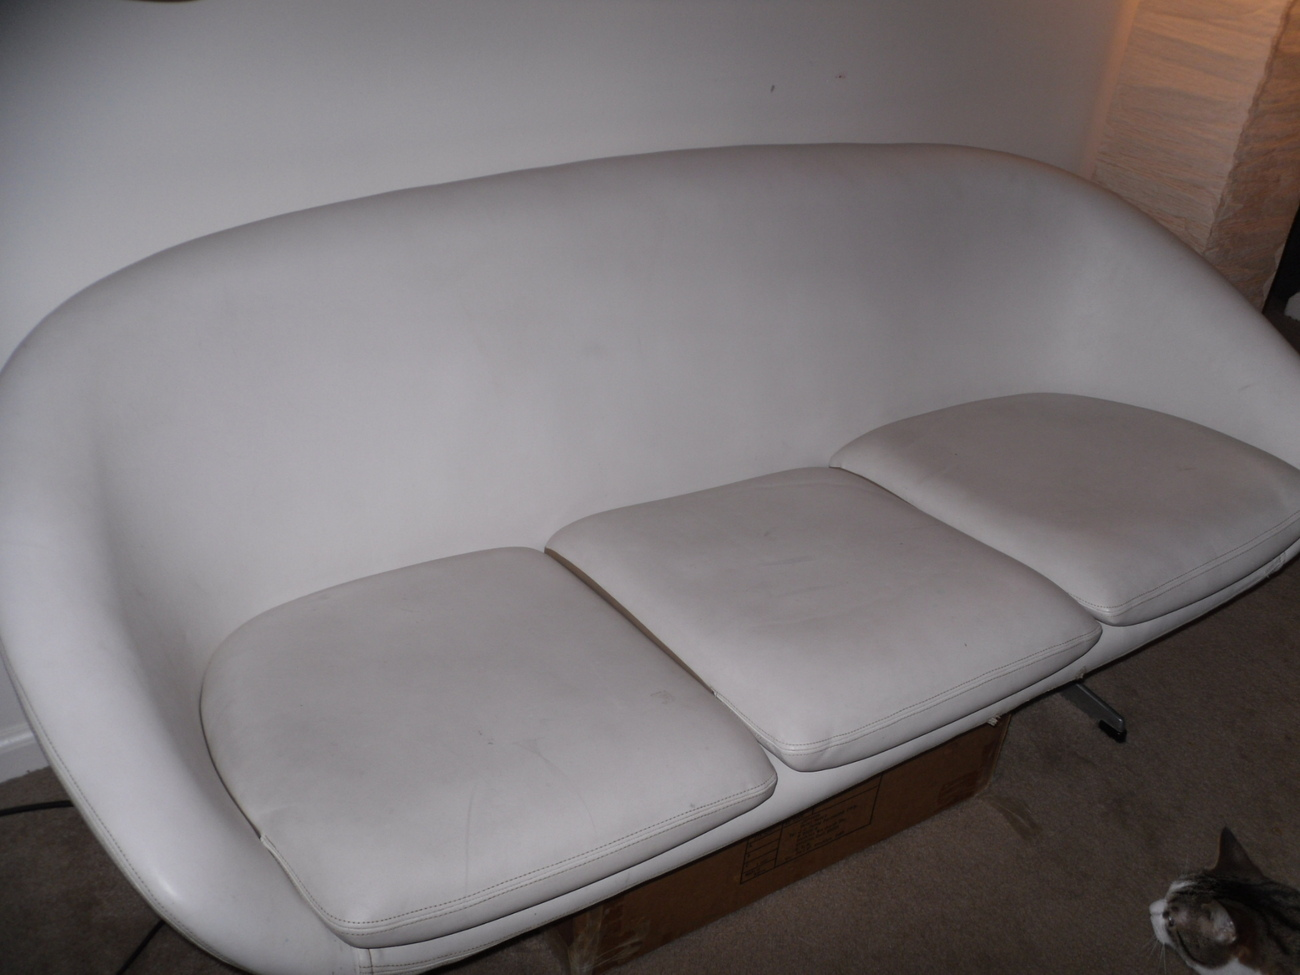 Primary image for Mid Century Overman AB Tranas Sweden Couch - Vintage